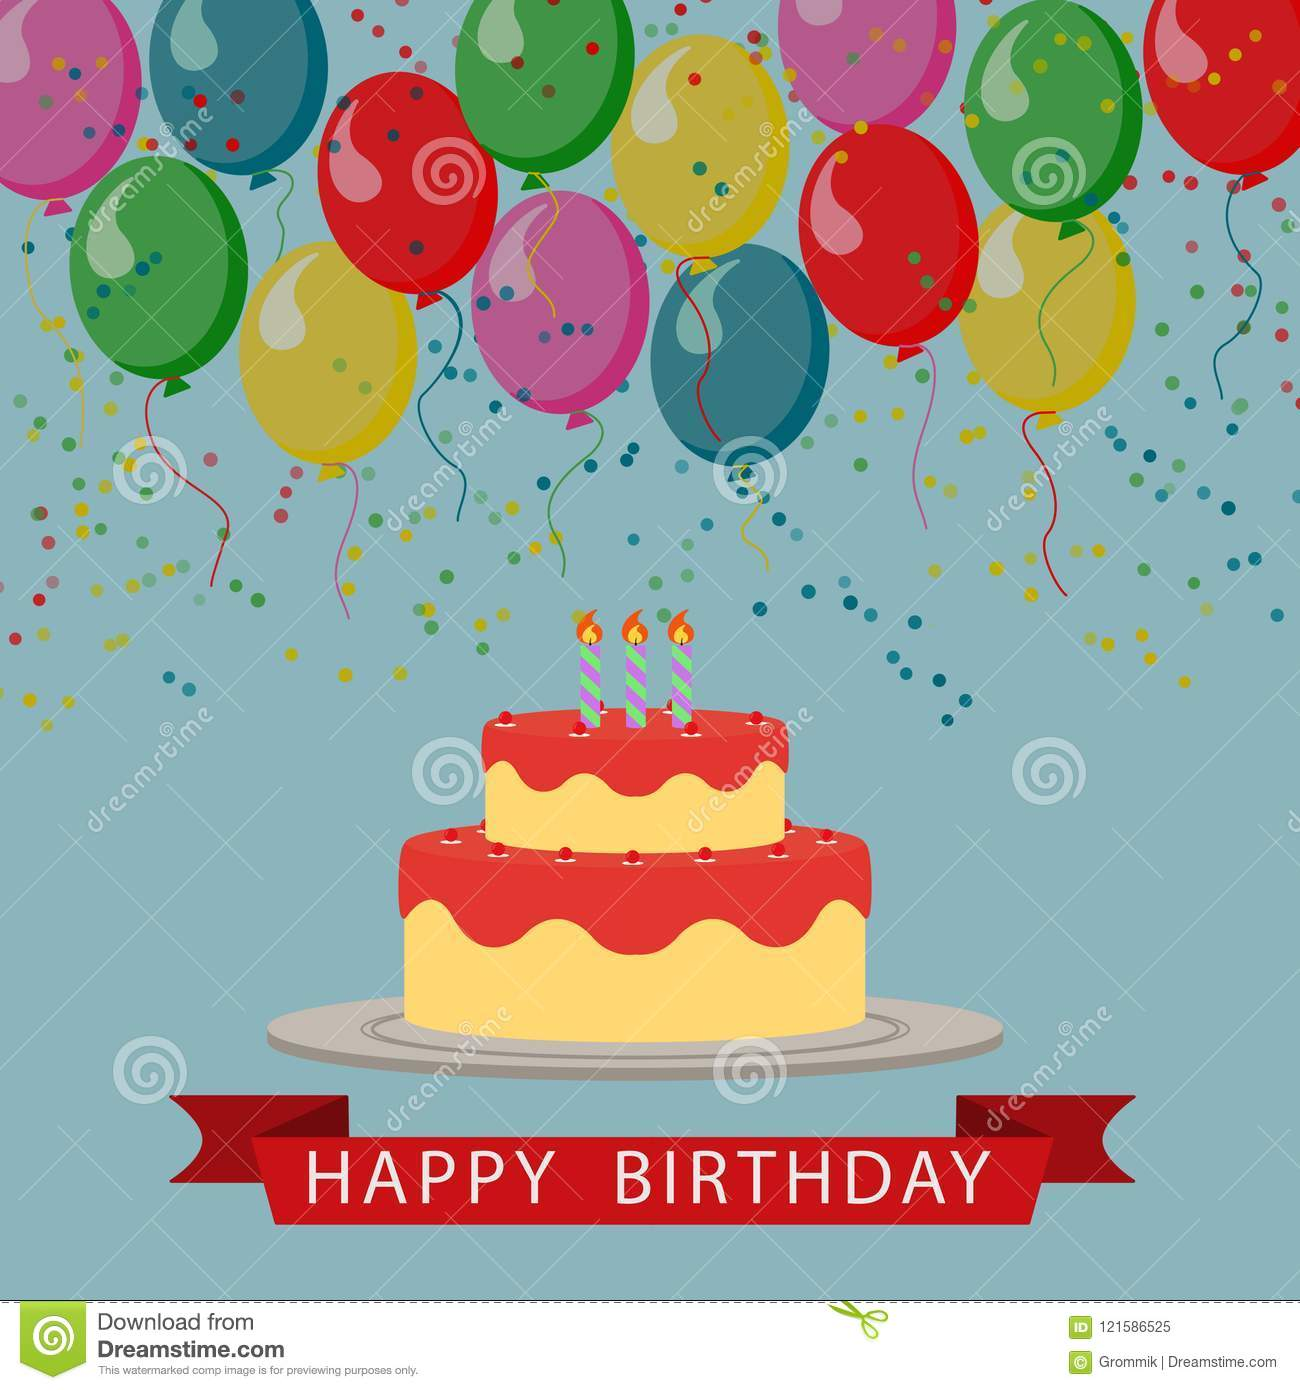 Illustrated Picture Birthday Greetings With Balloons Cake And